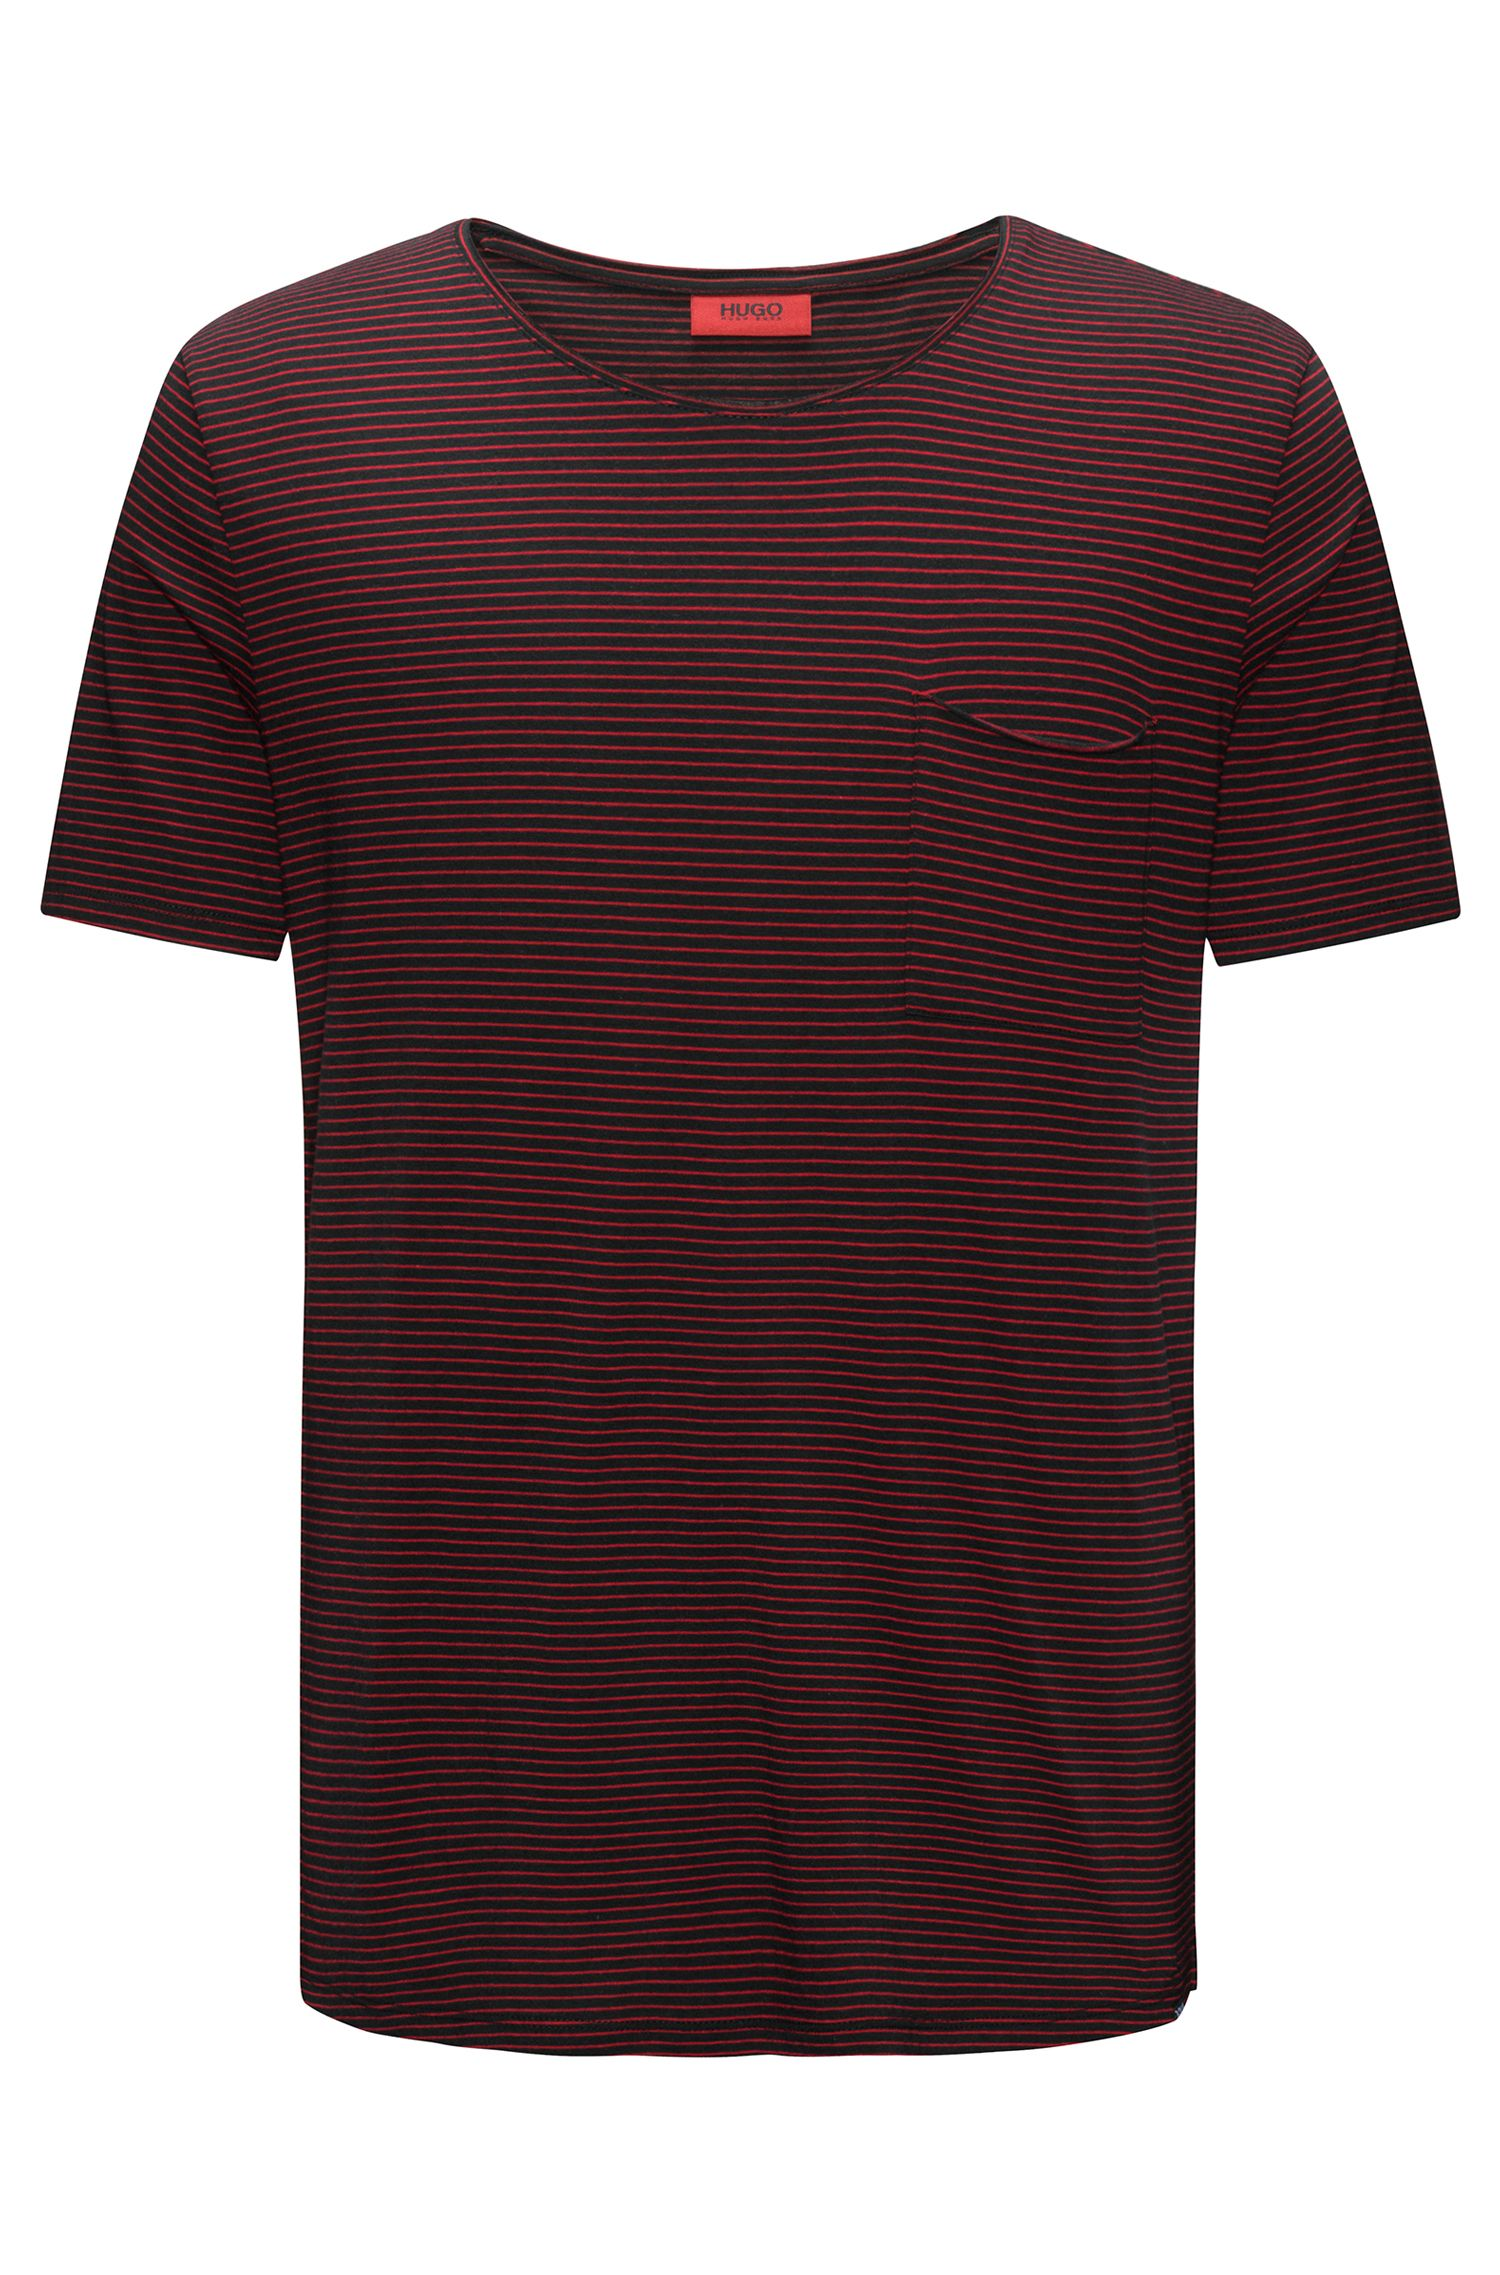 Striped cotton-blend T-shirt in a relaxed fit